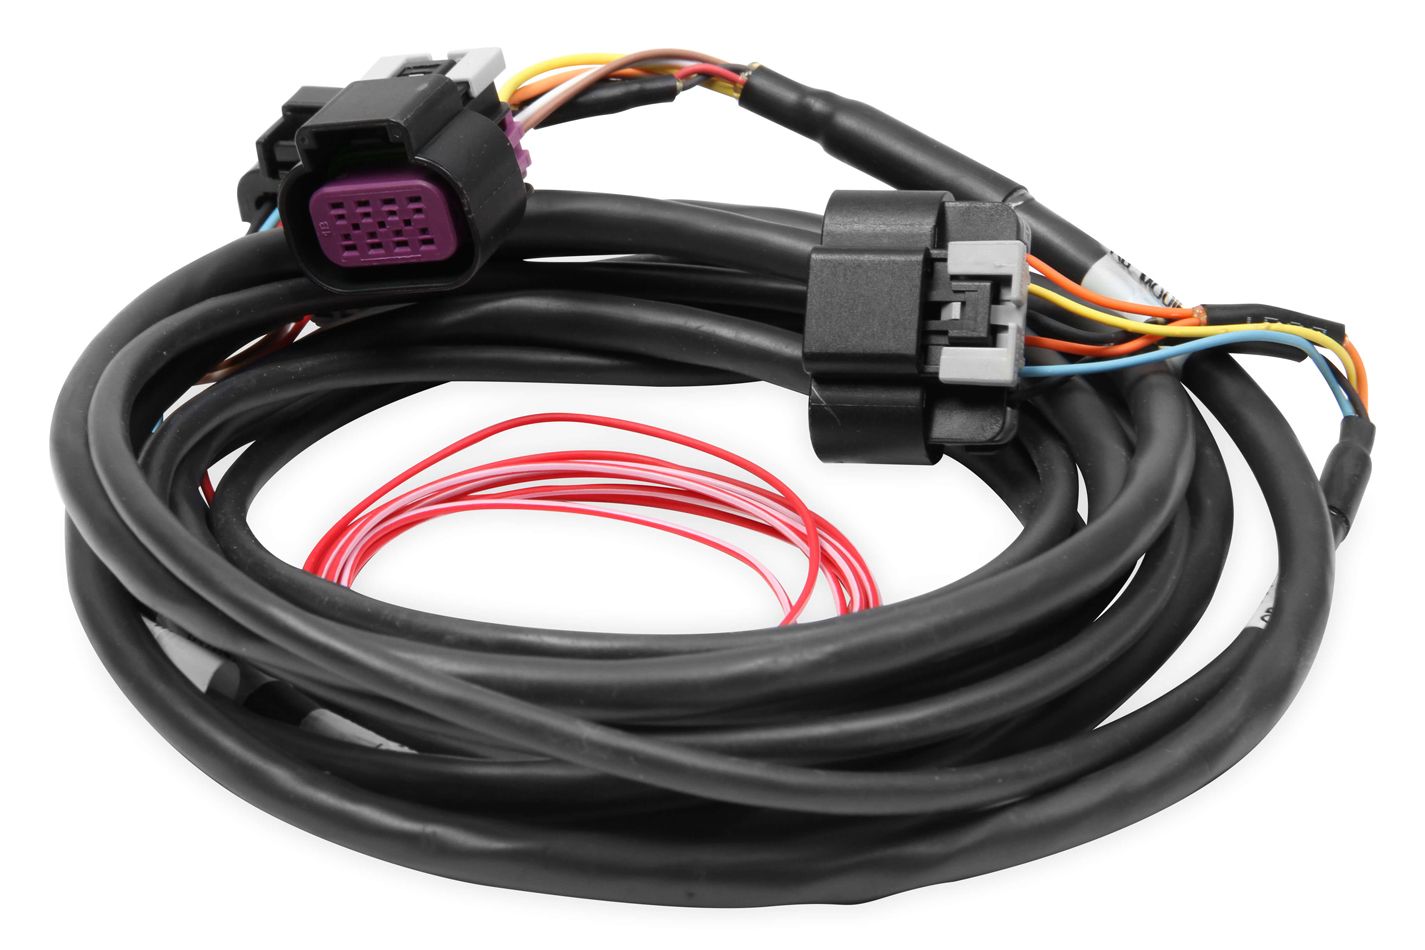 Holley 558-429 EFI Wiring Harness, Drive by Wire, Holley Dominator EFI, GM, Each